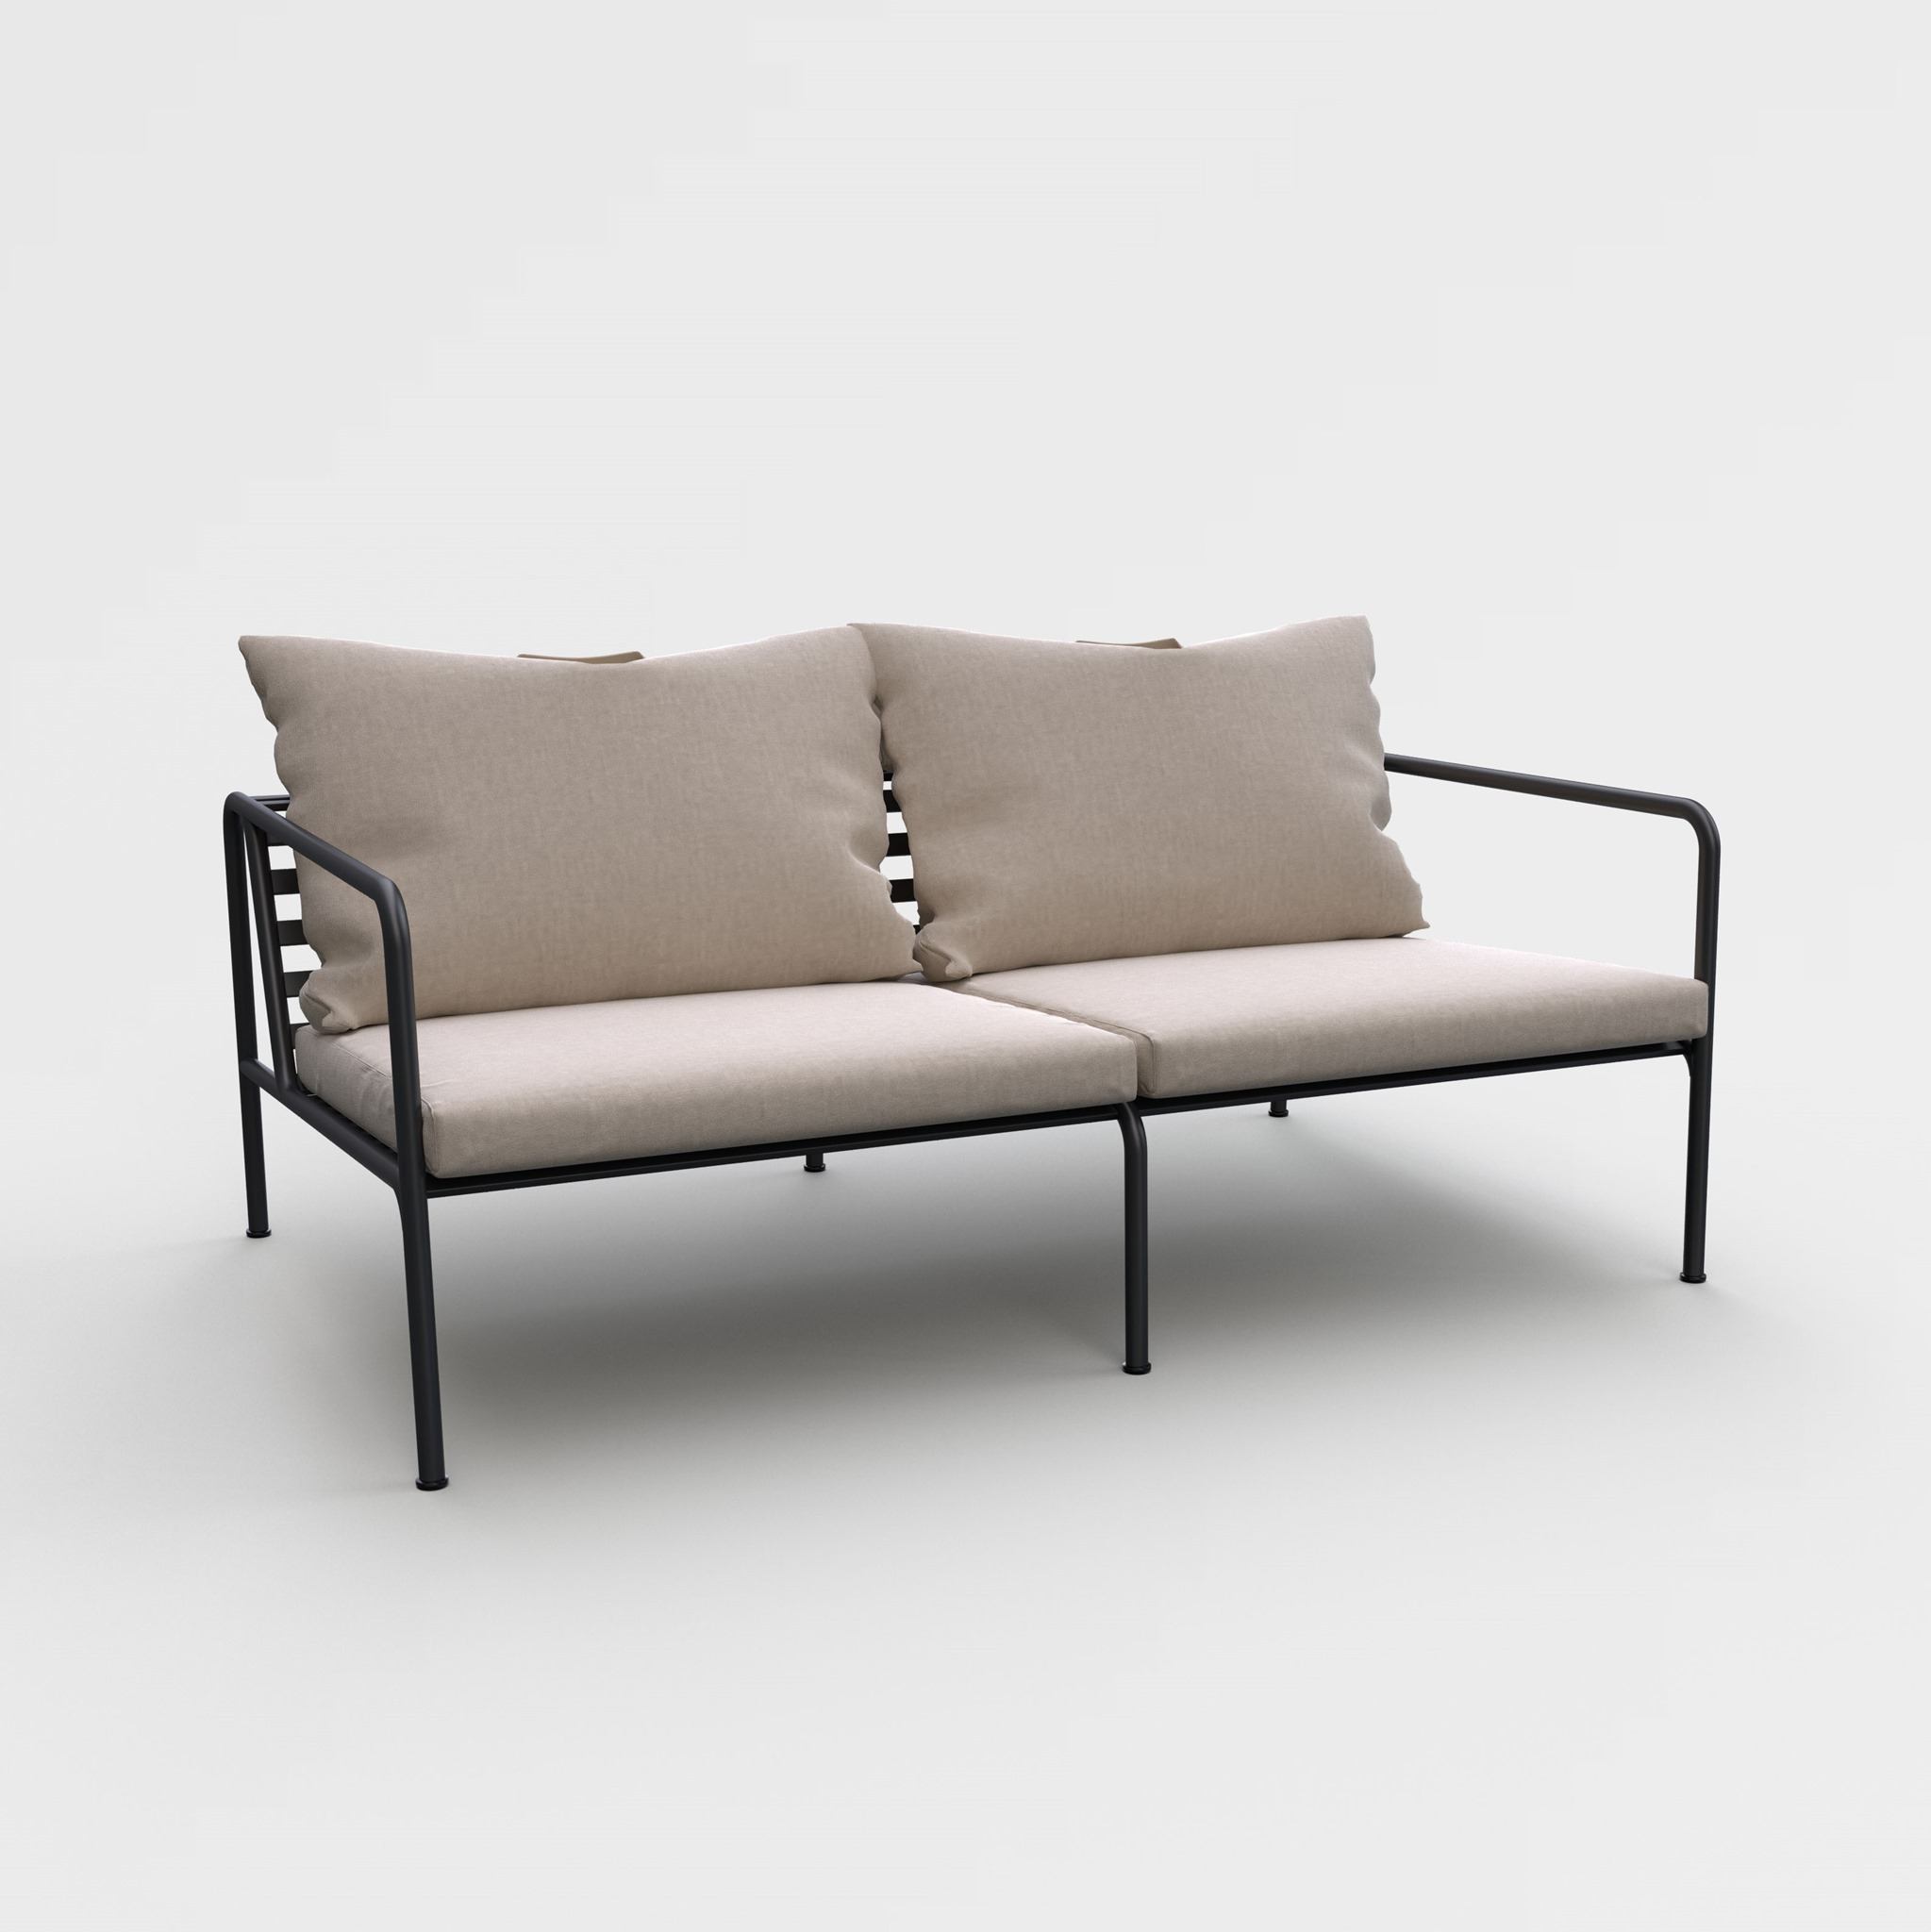 AVON Lounge Sofa